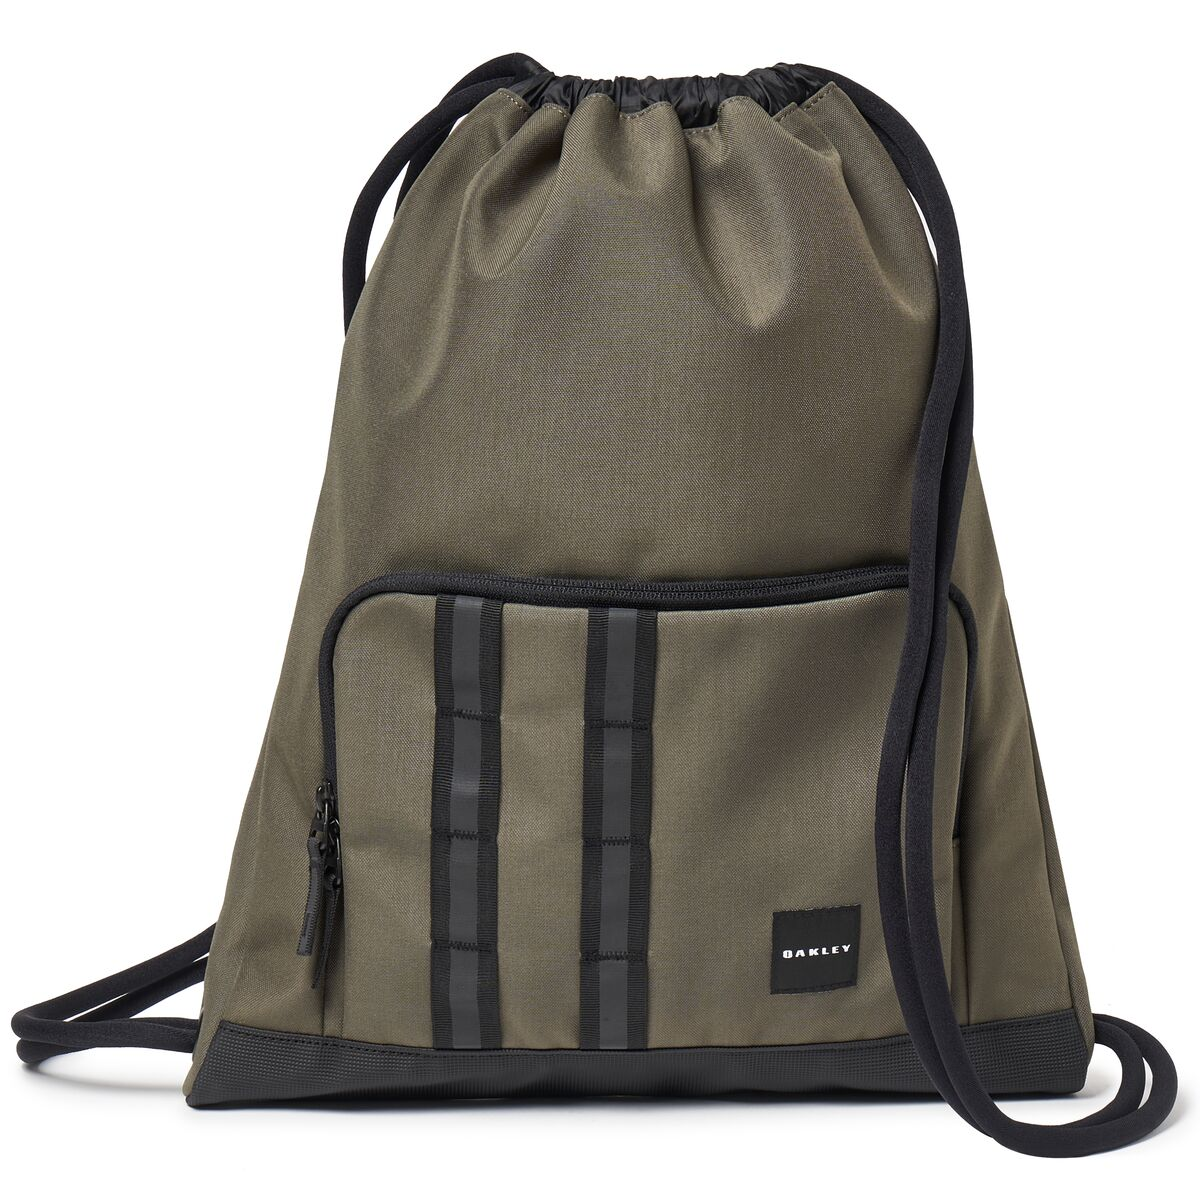 well known official site finest selection Oakley Utility Satchel Bag - Mens | Free Shipping over $49!